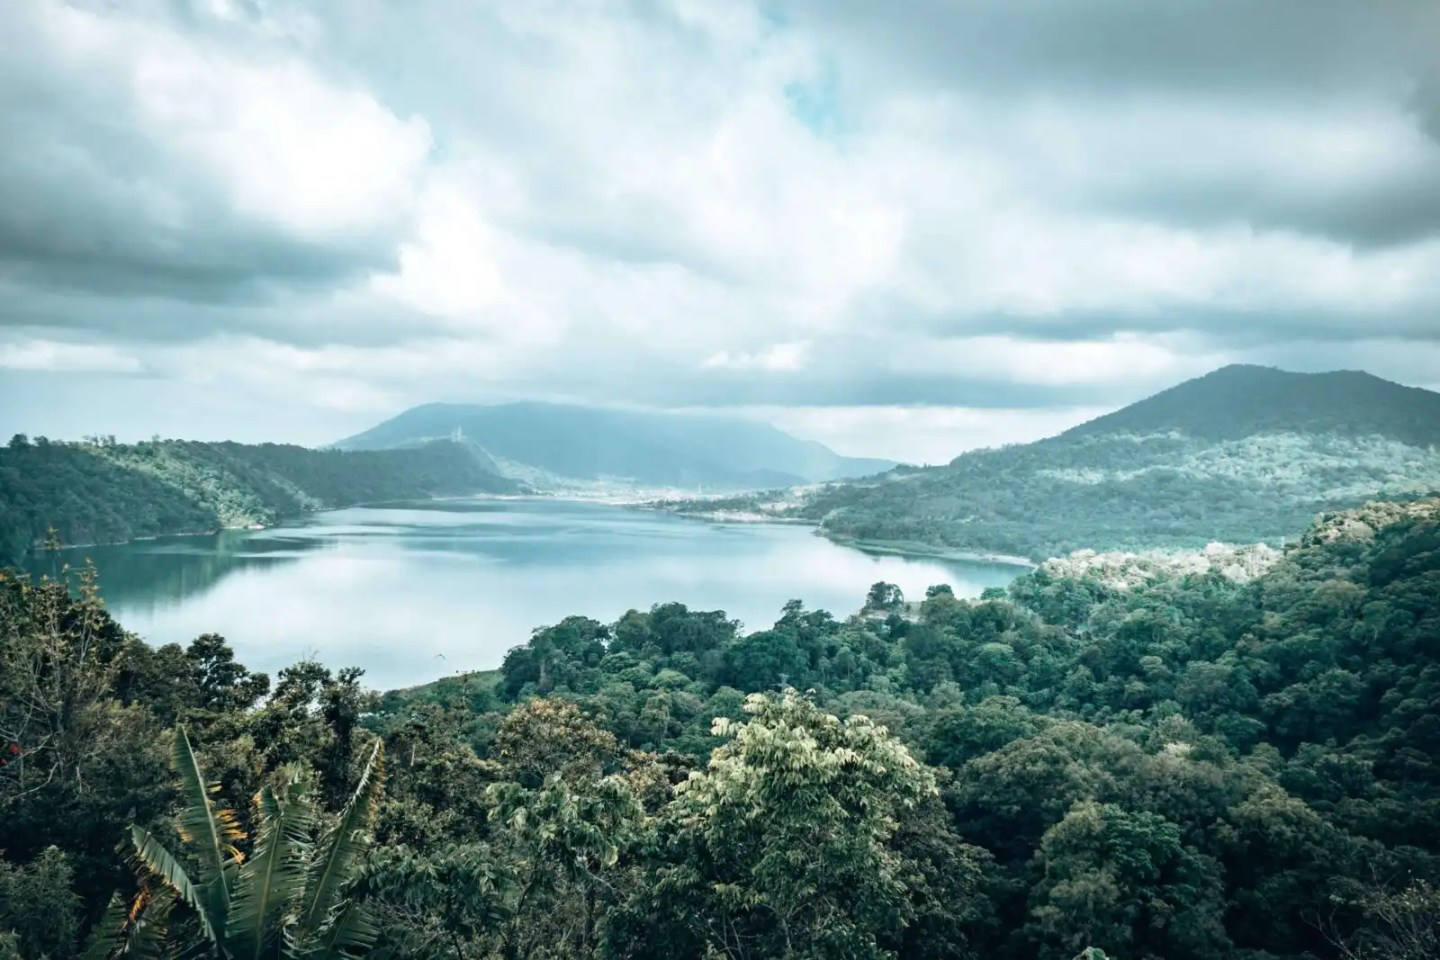 Twin Lakes Bali - View from the top